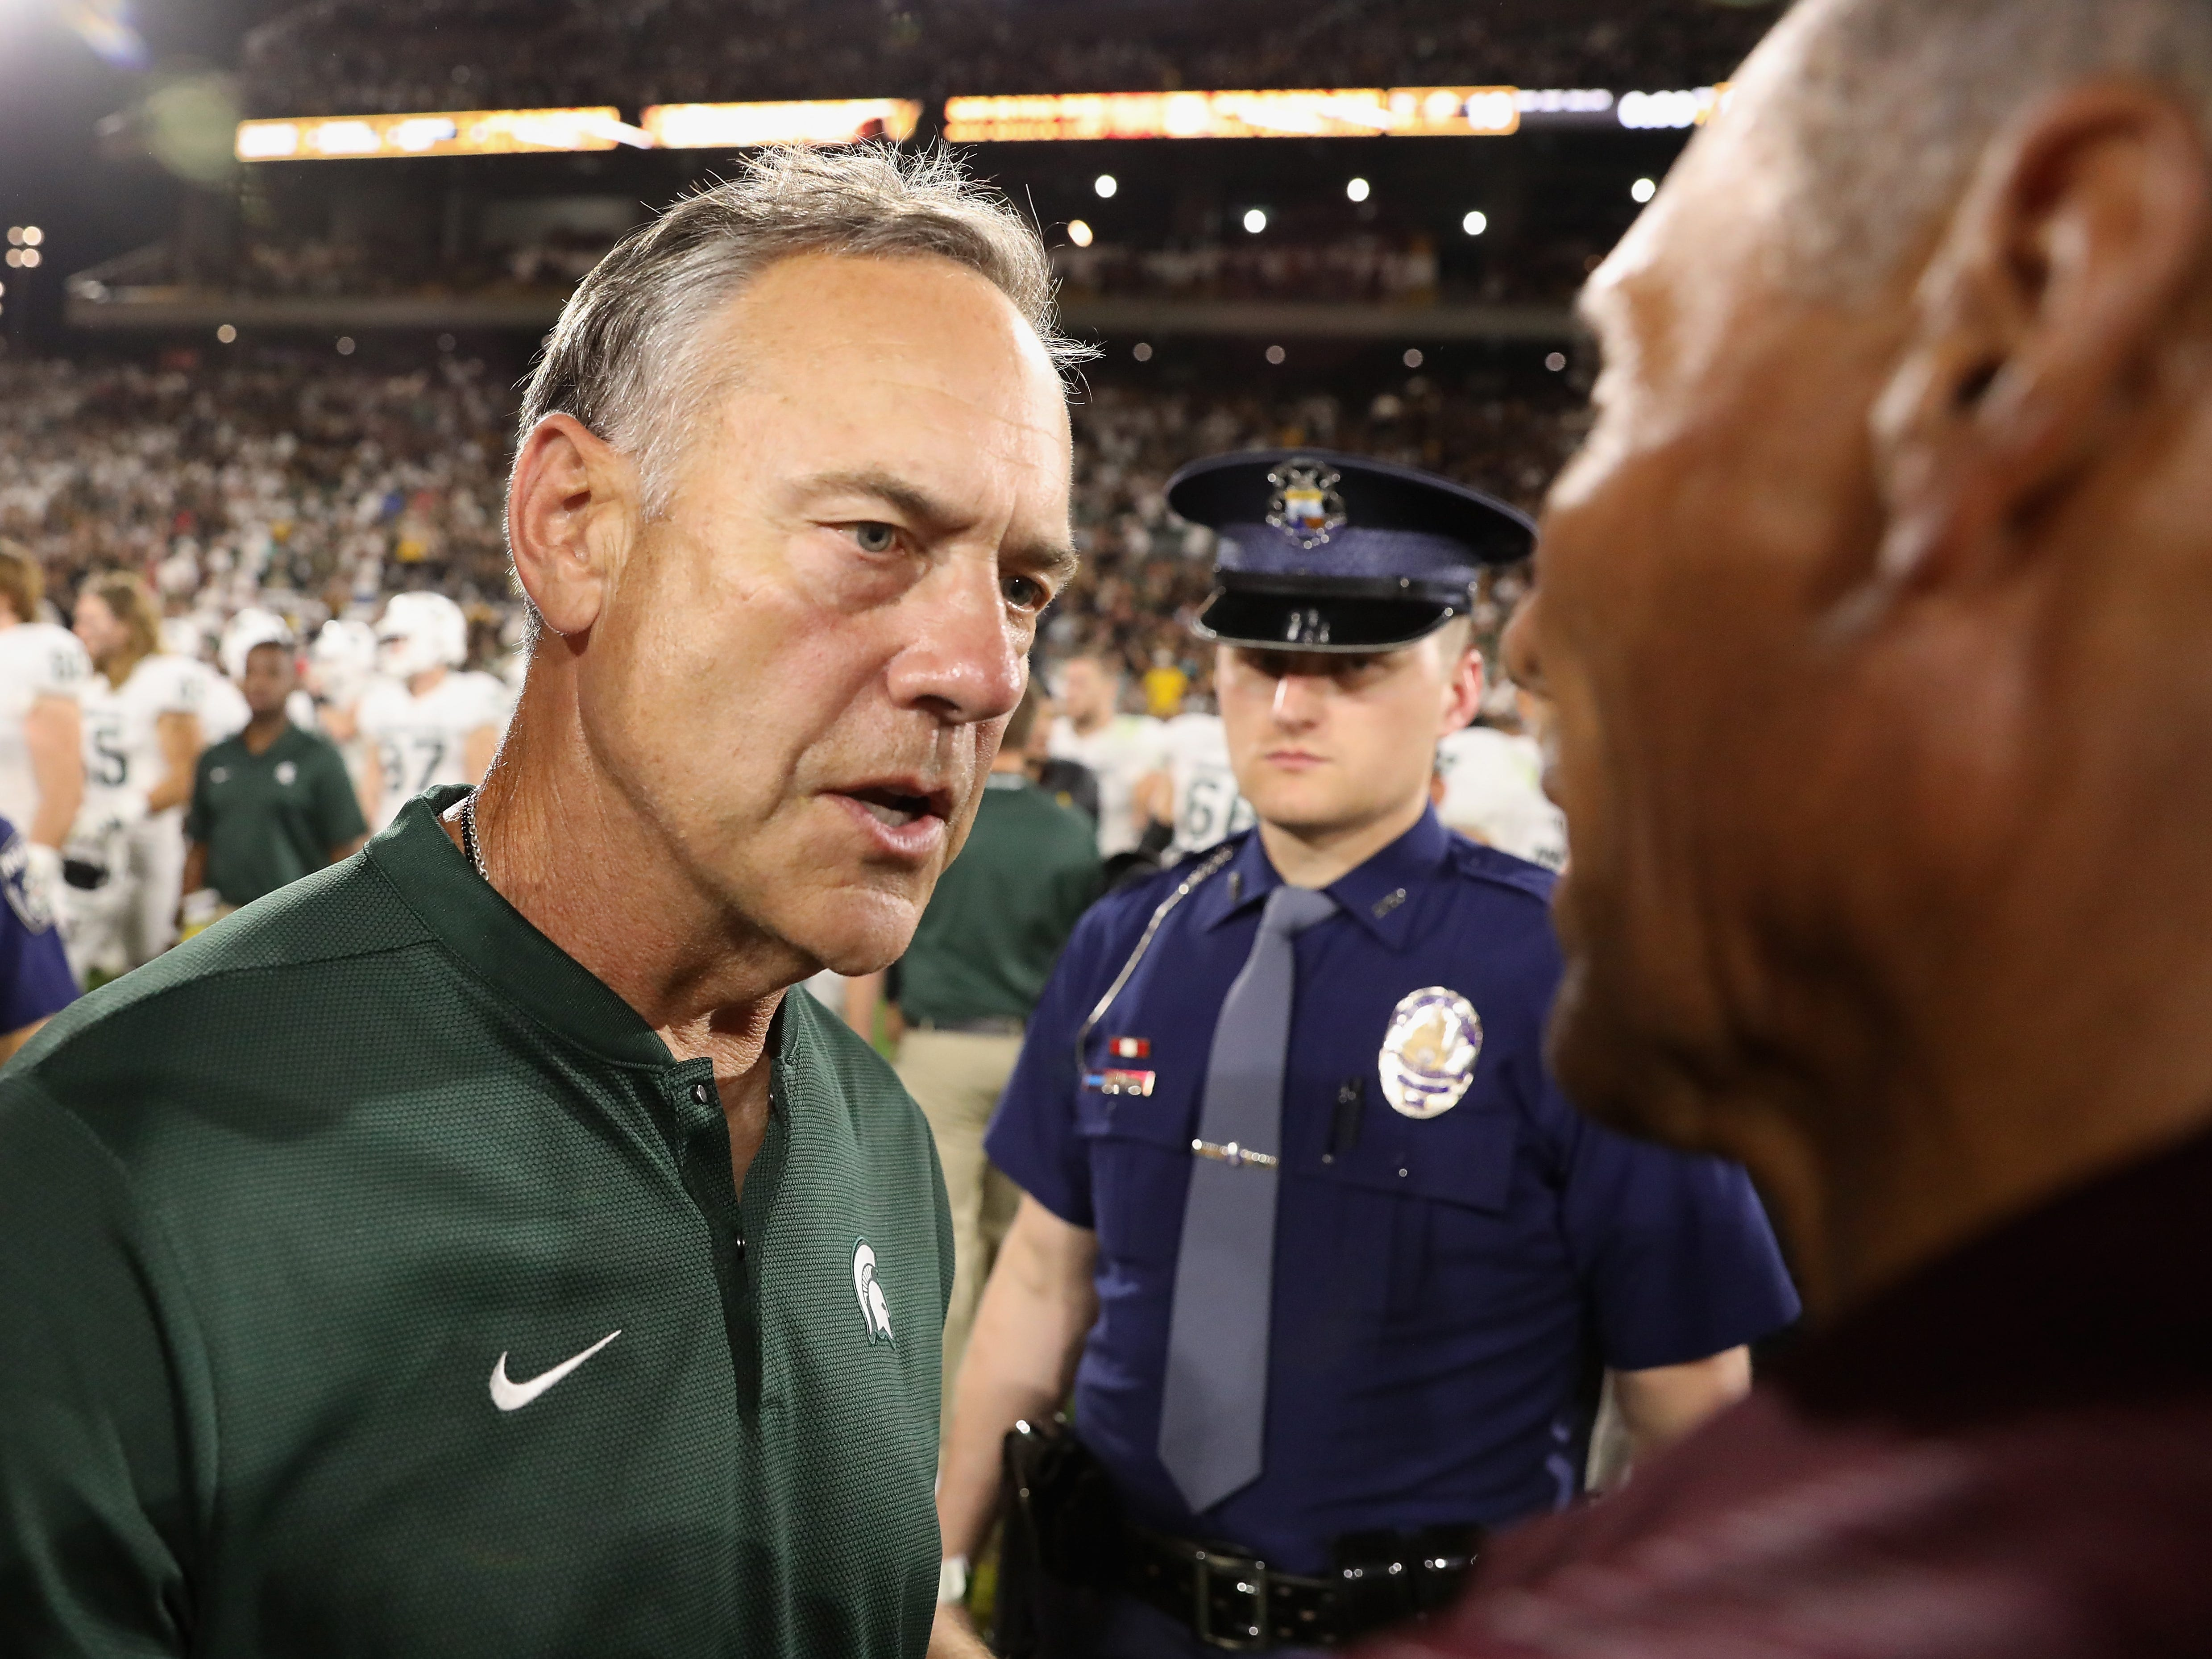 Head coach Mark Dantonio (L) of the Michigan State Spartans greets head coach Herm Edwards of the Arizona State Sun Devils following the college football game at Sun Devil Stadium on September 8, 2018 in Tempe, Arizona.  The Sun Devils defeated the Spartans 16-13.